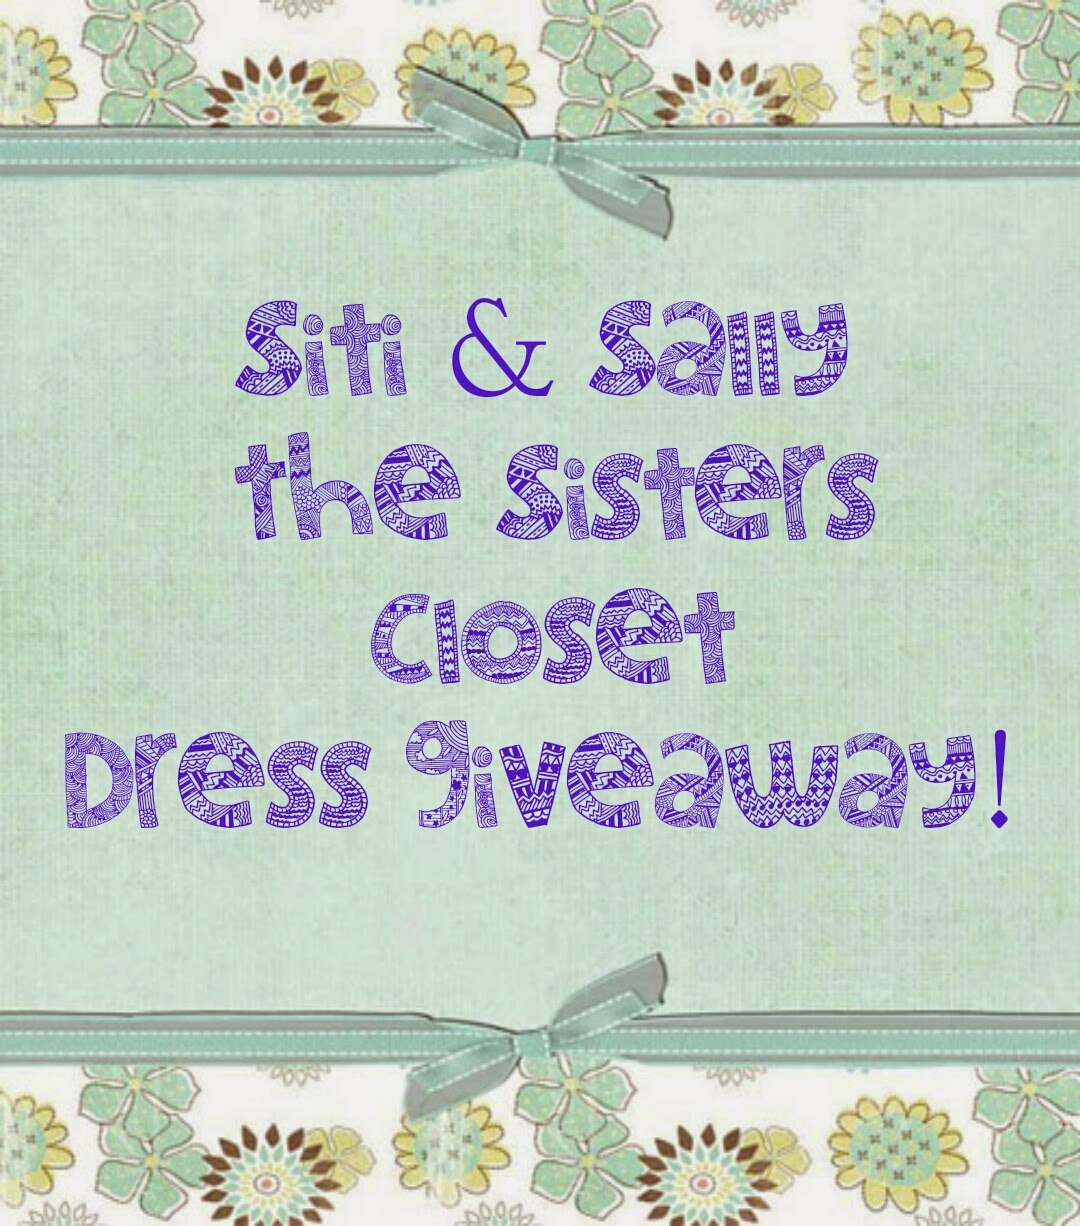 http://sallysamsaiman.blogspot.com/2014/09/siti-sally-sisters-closet-dress-giveaway.html